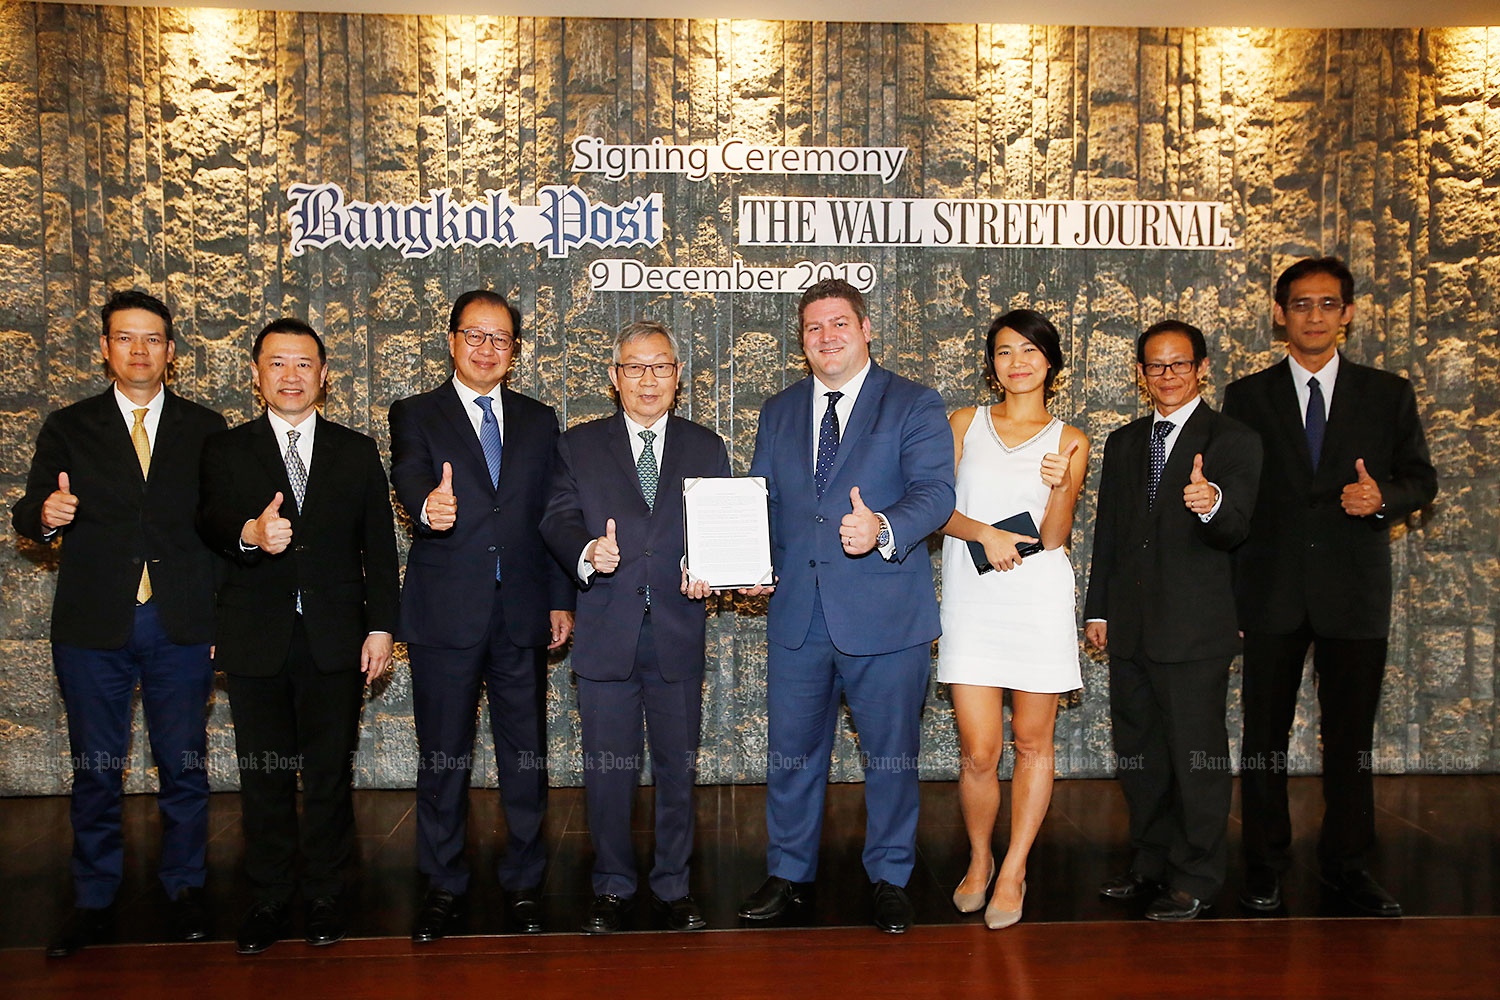 Suthikiati Chirathivat, 4th left, chairman of Bangkok Post Plc, and Jonathan Wright, 4th right, global managing director for Dow Jones and the Wall Street Journal, hold a partnership contract after the signing ceremony at Centara Grand at CentralWorld. The ceremony was attended by Thirakiati Chirathivat, left, executive director of Bangkok Post Plc; Ek-Rit Boonpiti, 2nd left, executive director of Bangkok Post Plc; Worachai Bhicharnchitr, 3rd left, Bangkok Post Plc's vice-chairman; Esme Choi, 3rd right, Asia Pacific manager of Commercial Partnerships, Dow Jones; Chiratas Nivatpumin, 2nd right, acting COO of Bangkok Post Plc and Soonruth Bunyamanee, right, the Bangkok Post's editor. (Photo by Pornprom Satrabhaya)